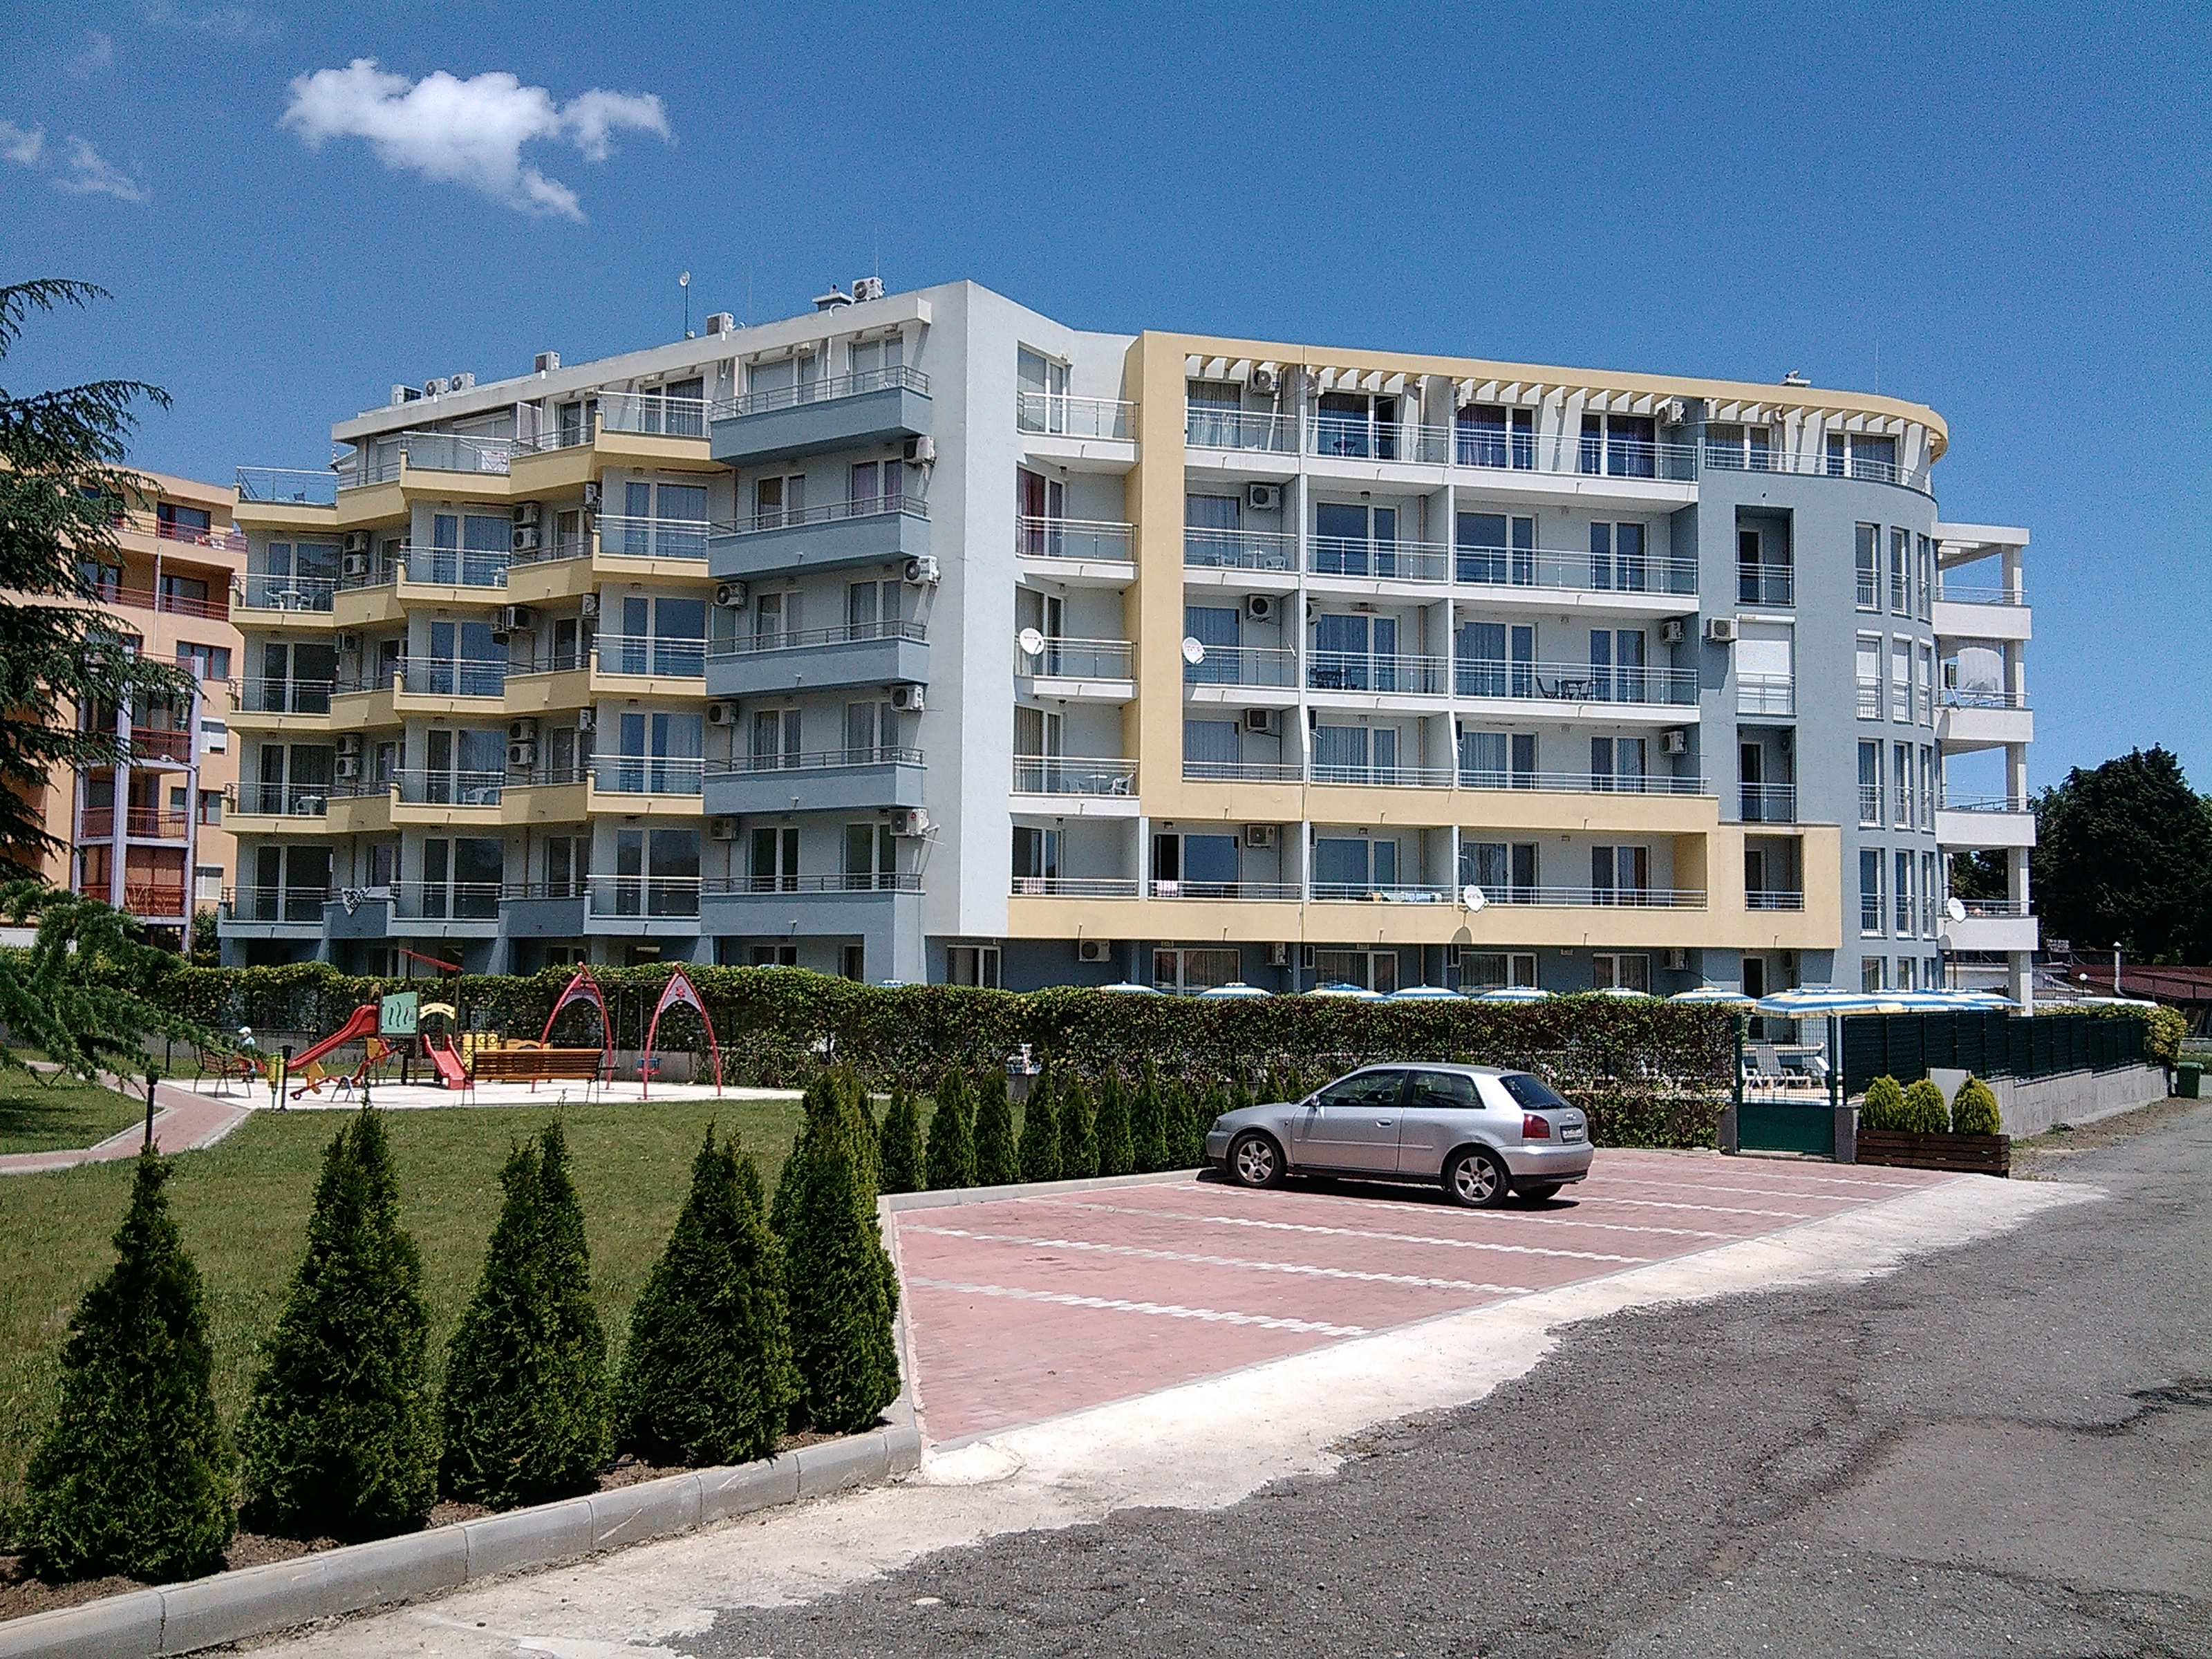 Santa Marina Holliday Village